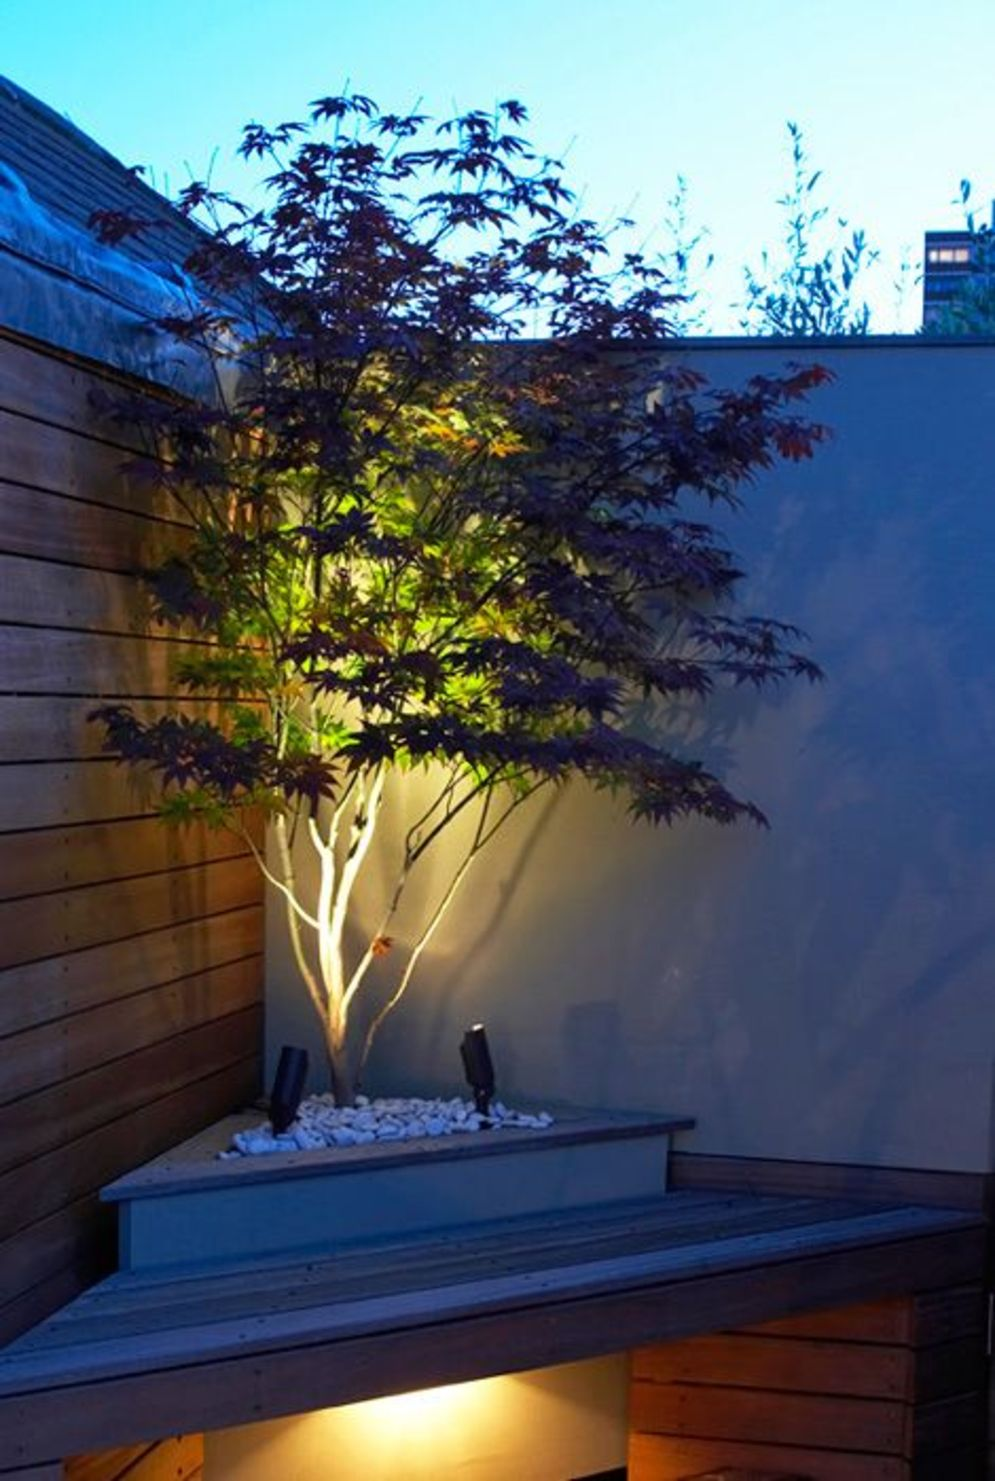 Beautiful garden lighting ideas with ground level ambient light giving luxurious resorts look Image 19